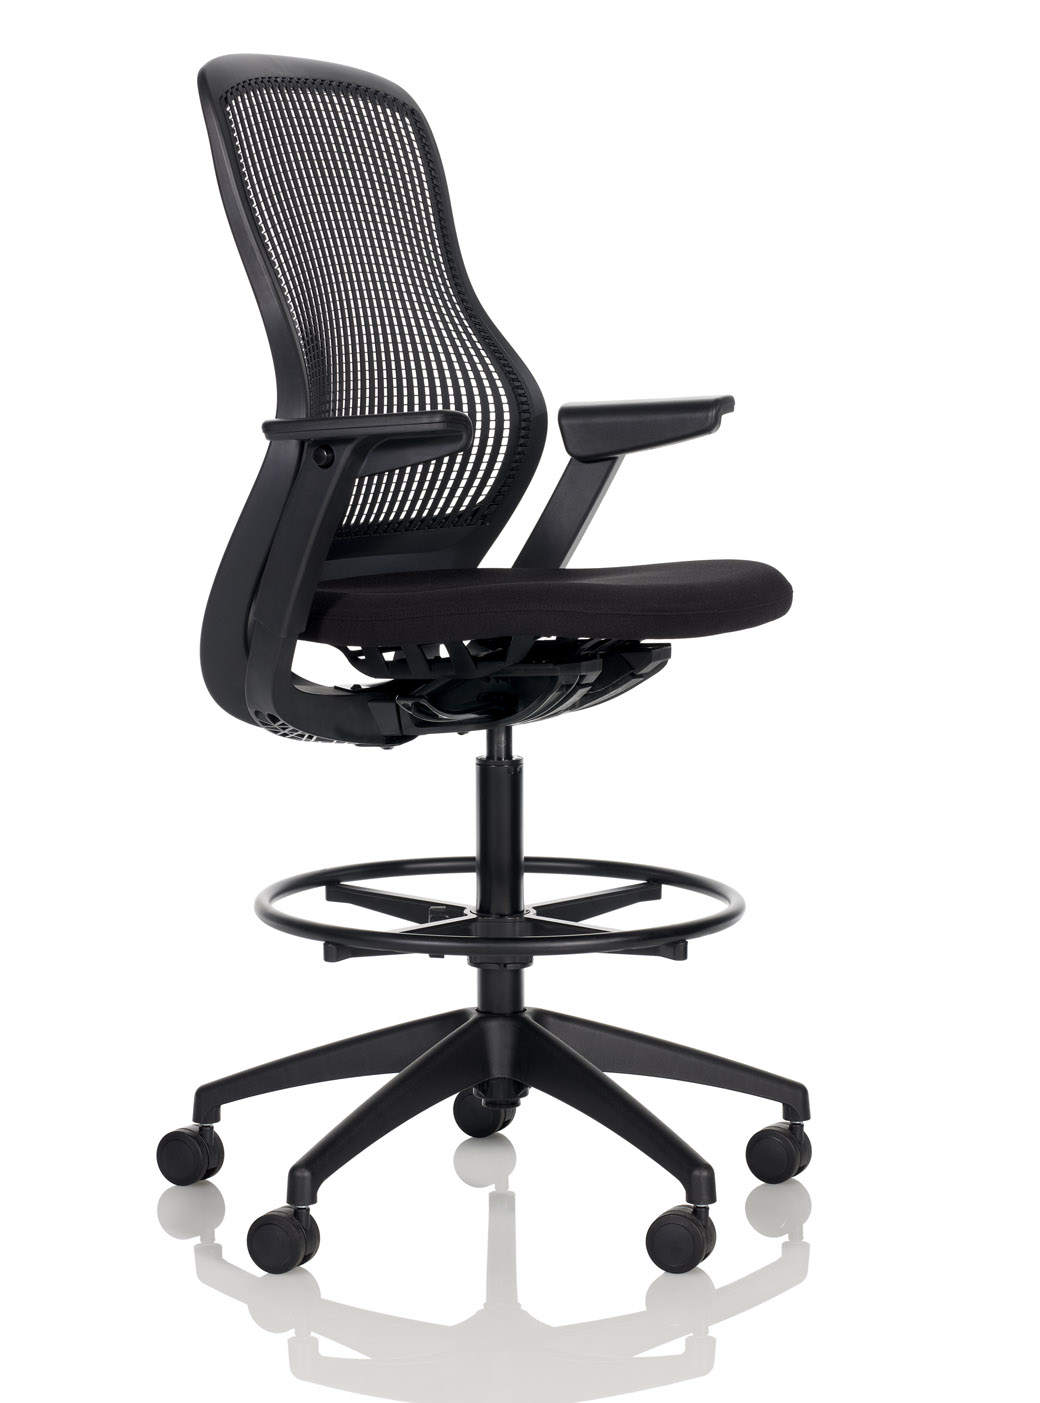 high lift office chair nz where can i rent a baby shower regeneration by knoll ergonomic task